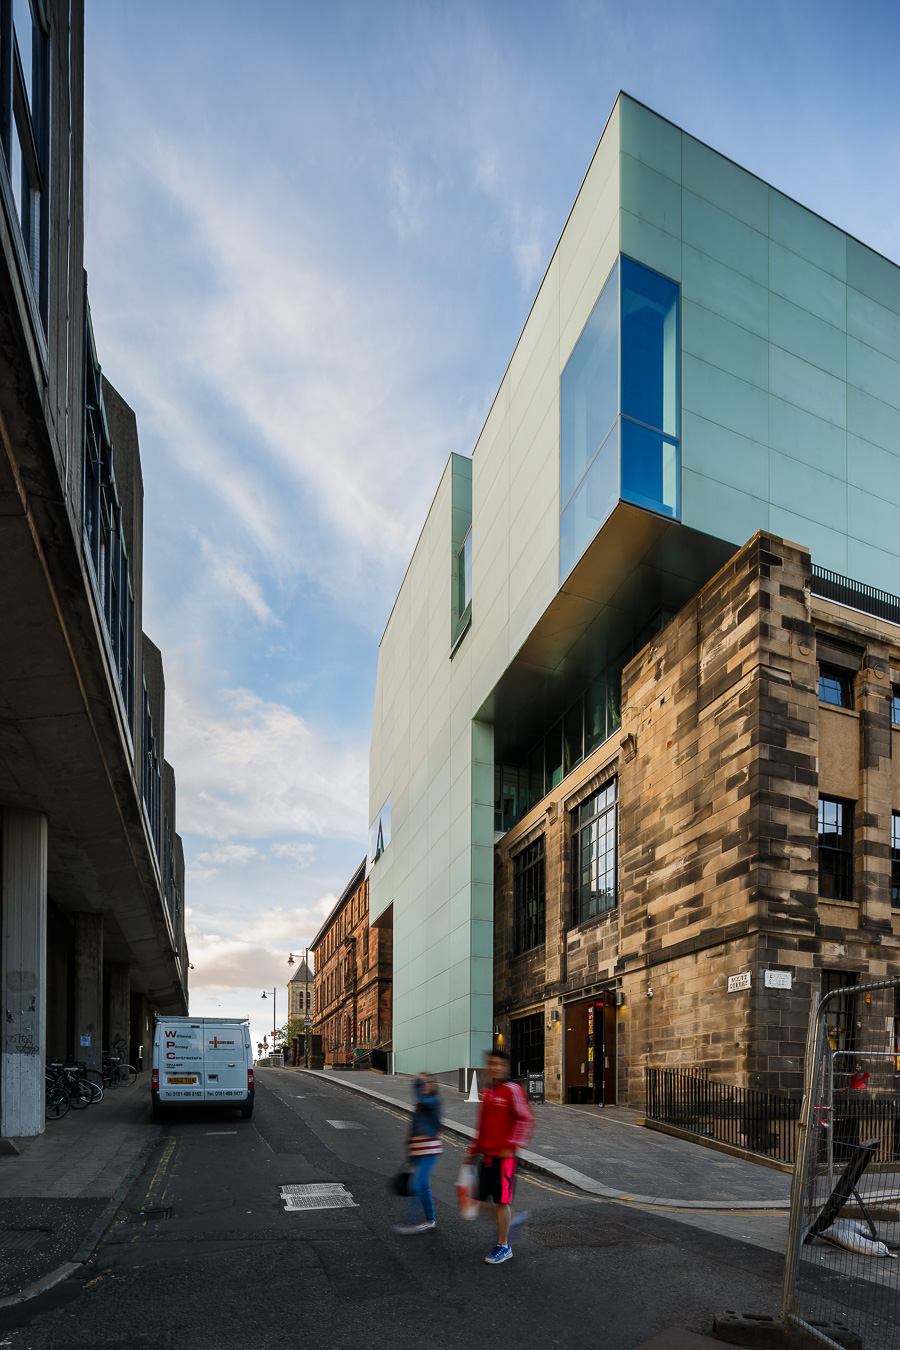 doublespace_architecture_steven_holl_glasgow_reid_school_of_arts-0001